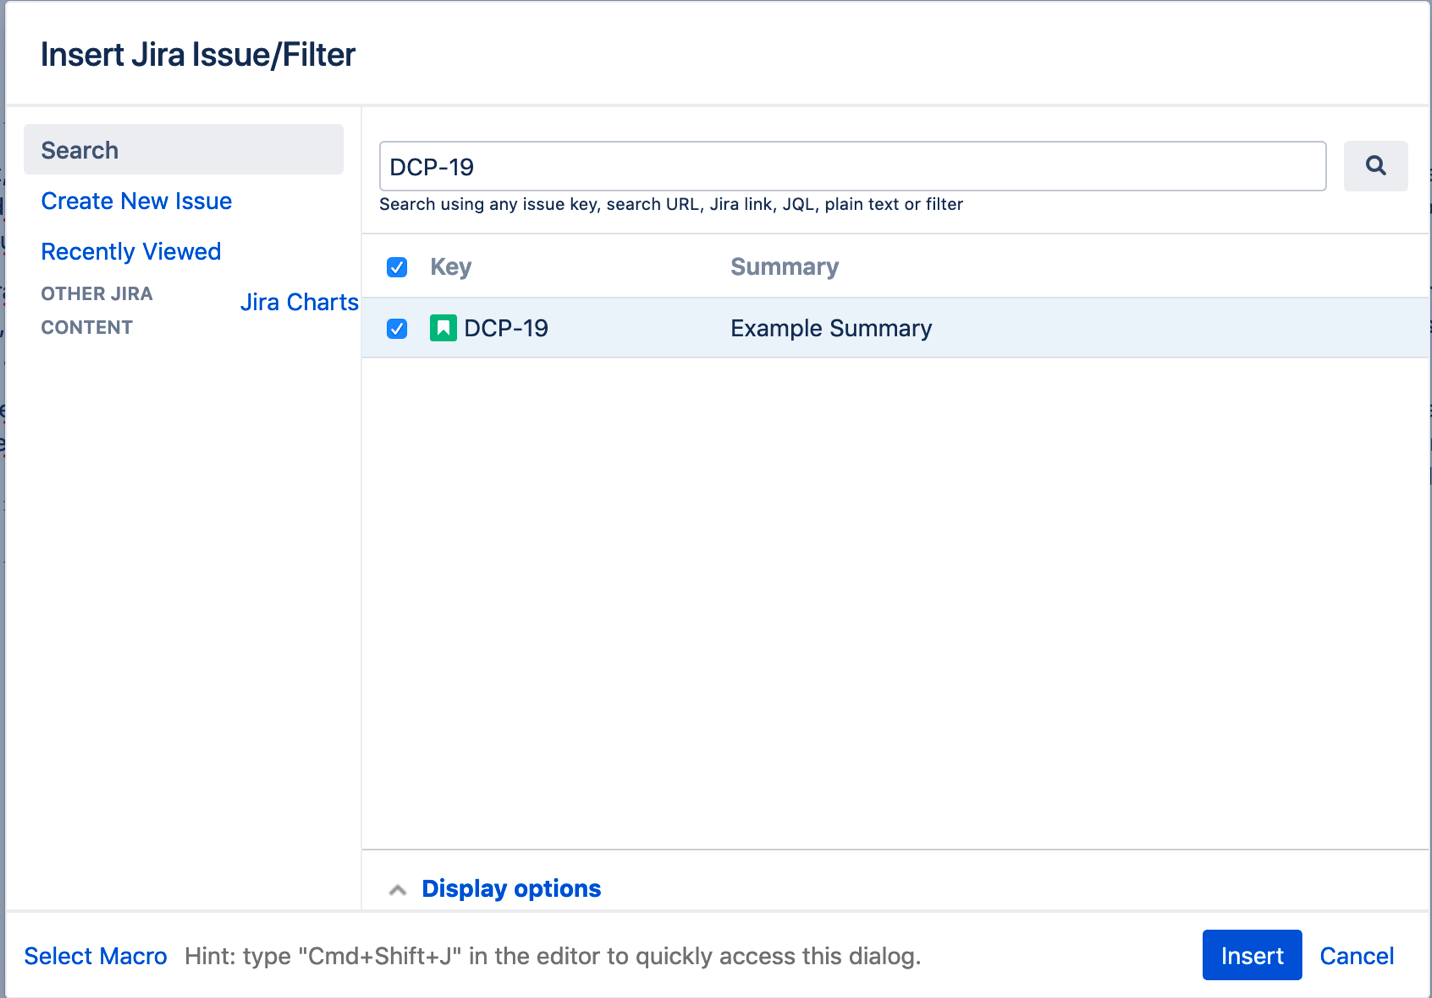 Jira issue display options